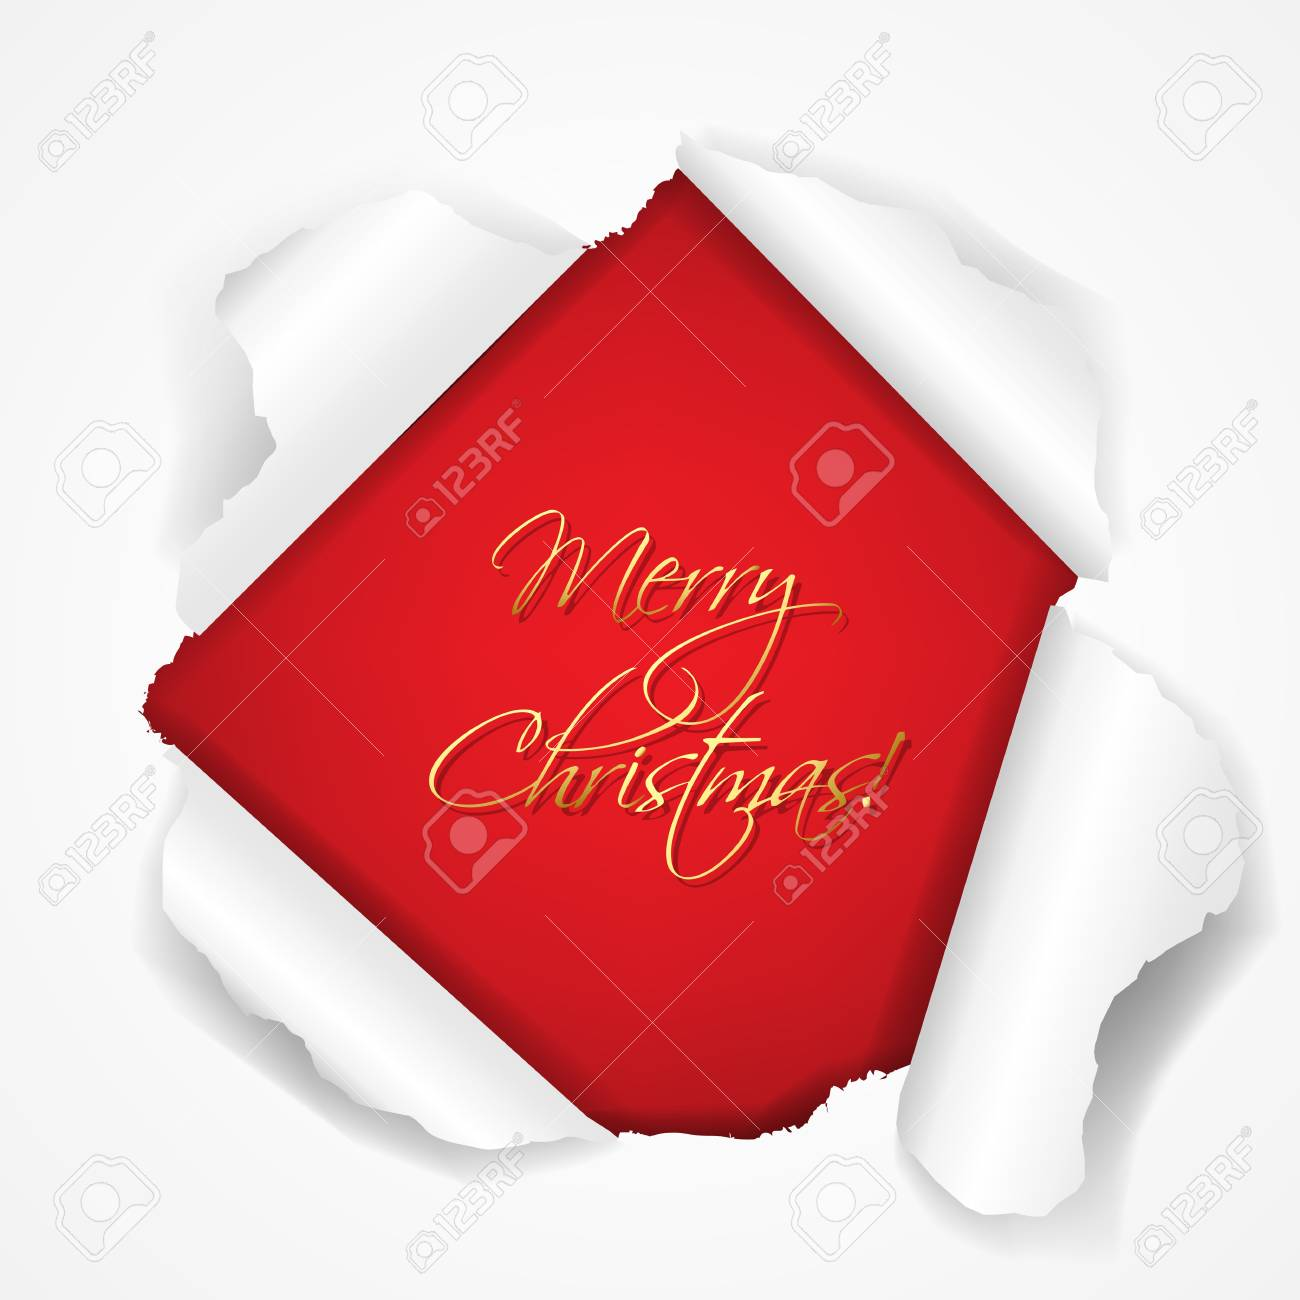 Merry Christmas Red Torn Card With Gradient Mesh, Vector Illustration Stock Vector - 16928020